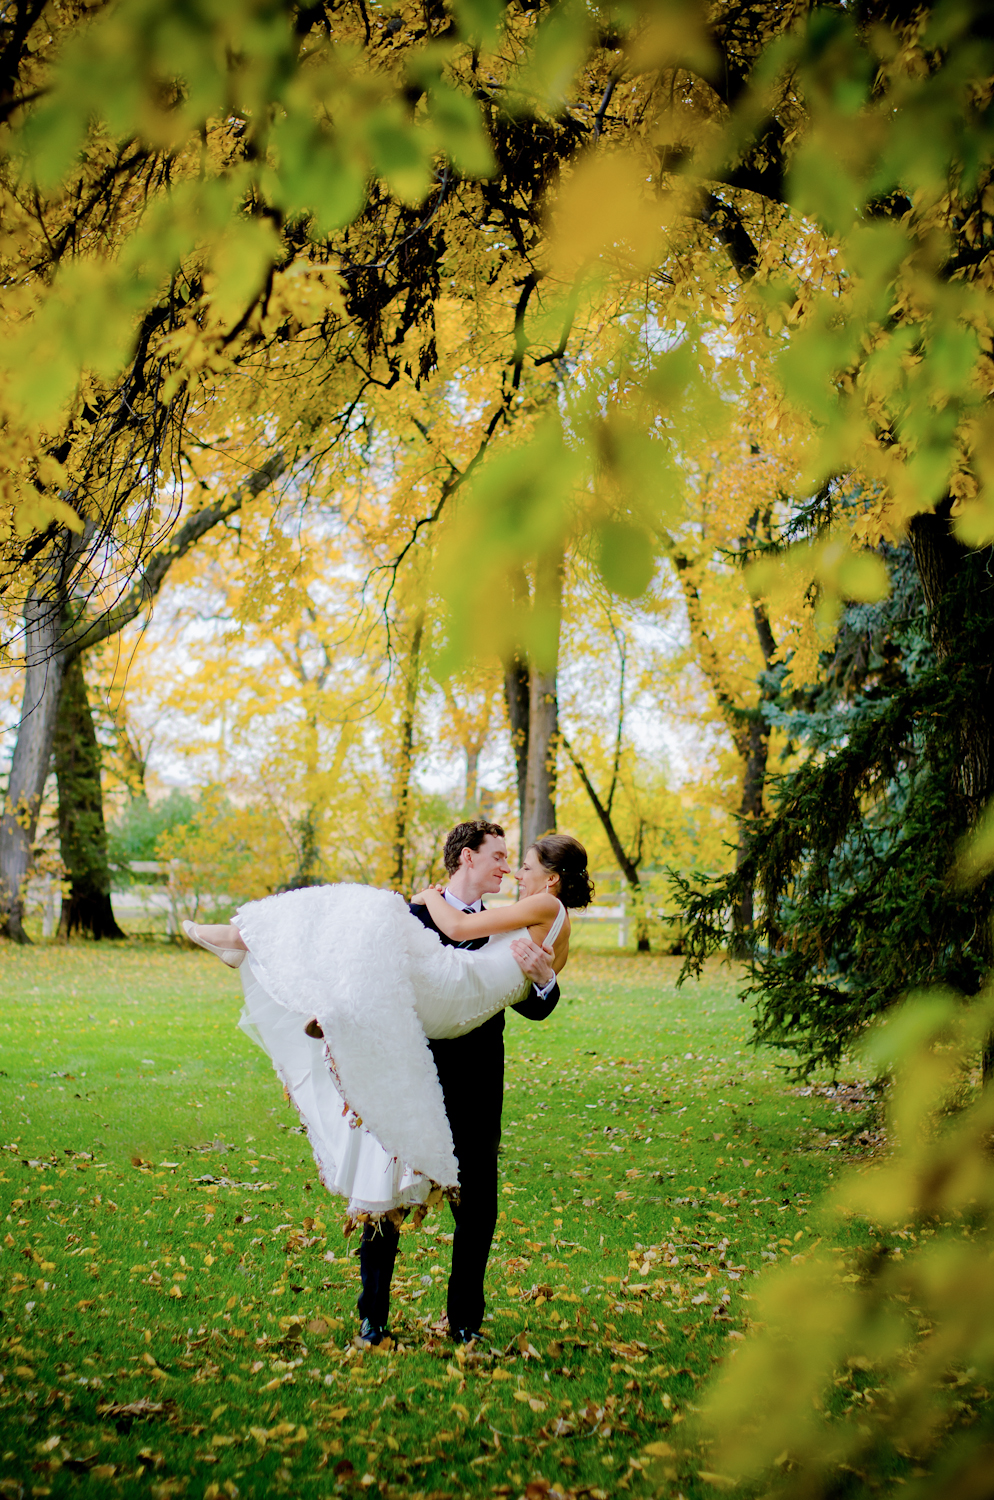 Calgary Wedding Photographer >> Let There Be Light Photography www.lettherebelightphoto.com